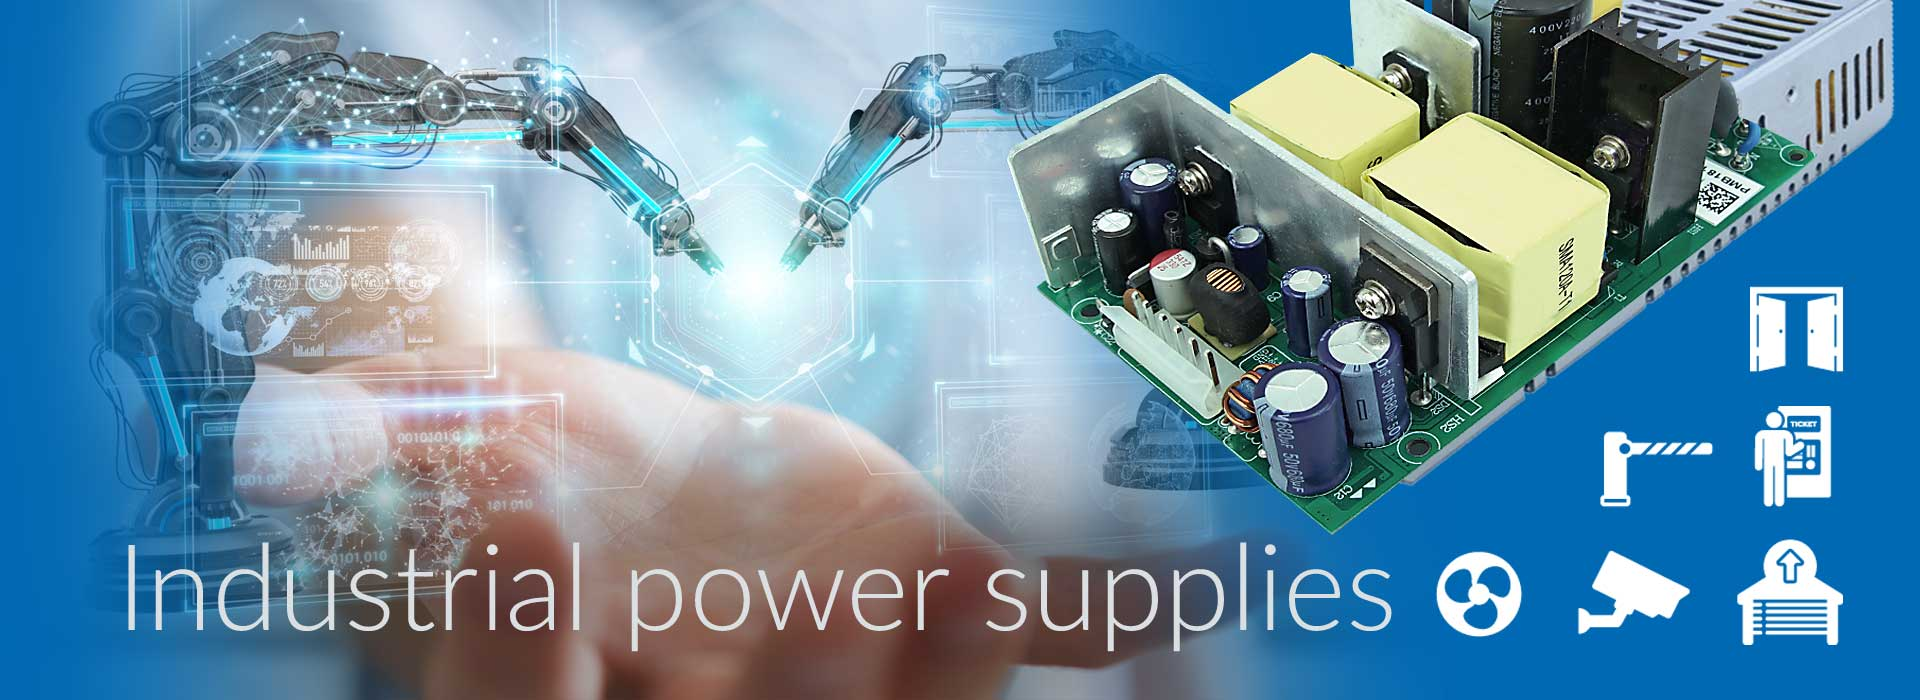 Industrial-power-supplies